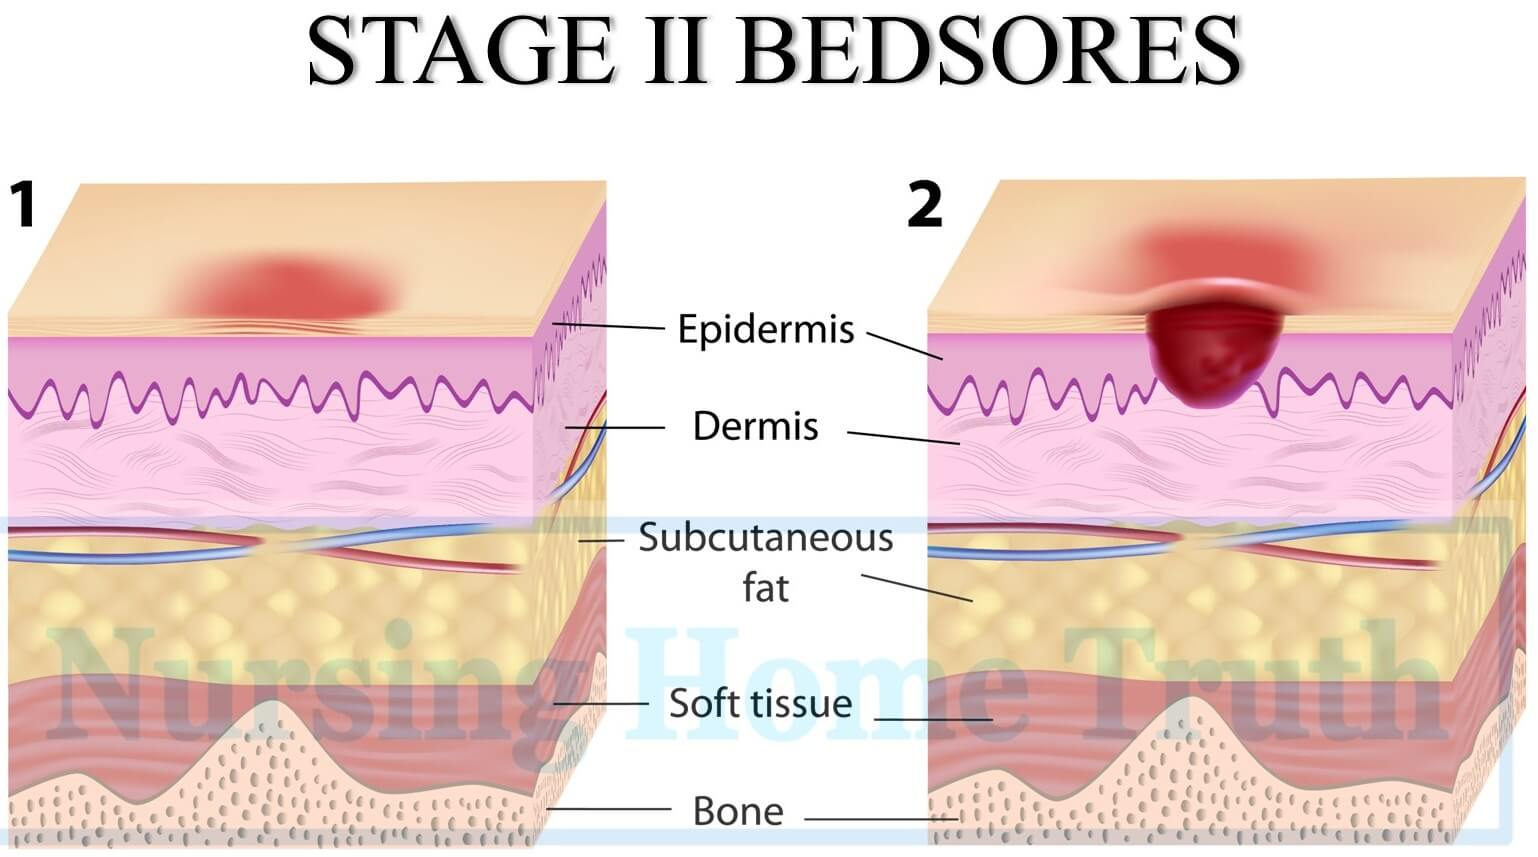 bedsore claims by stages